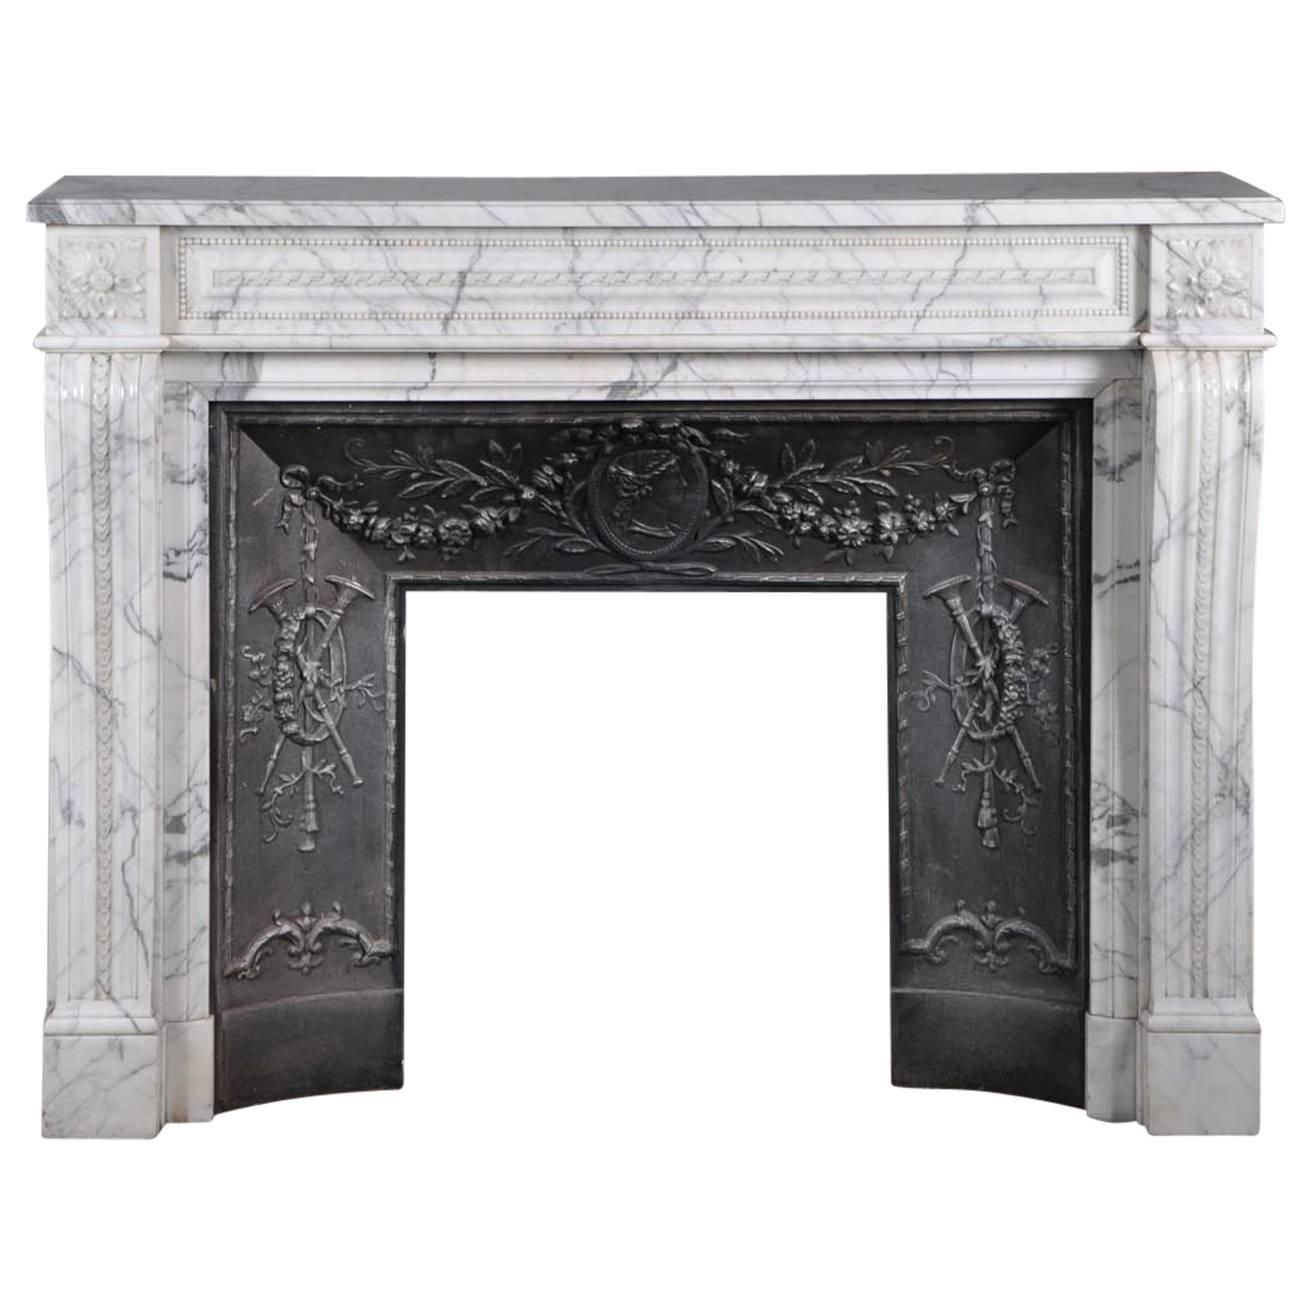 Arabescato Marble Fireplace With Its Original Cast Iron Inside 1